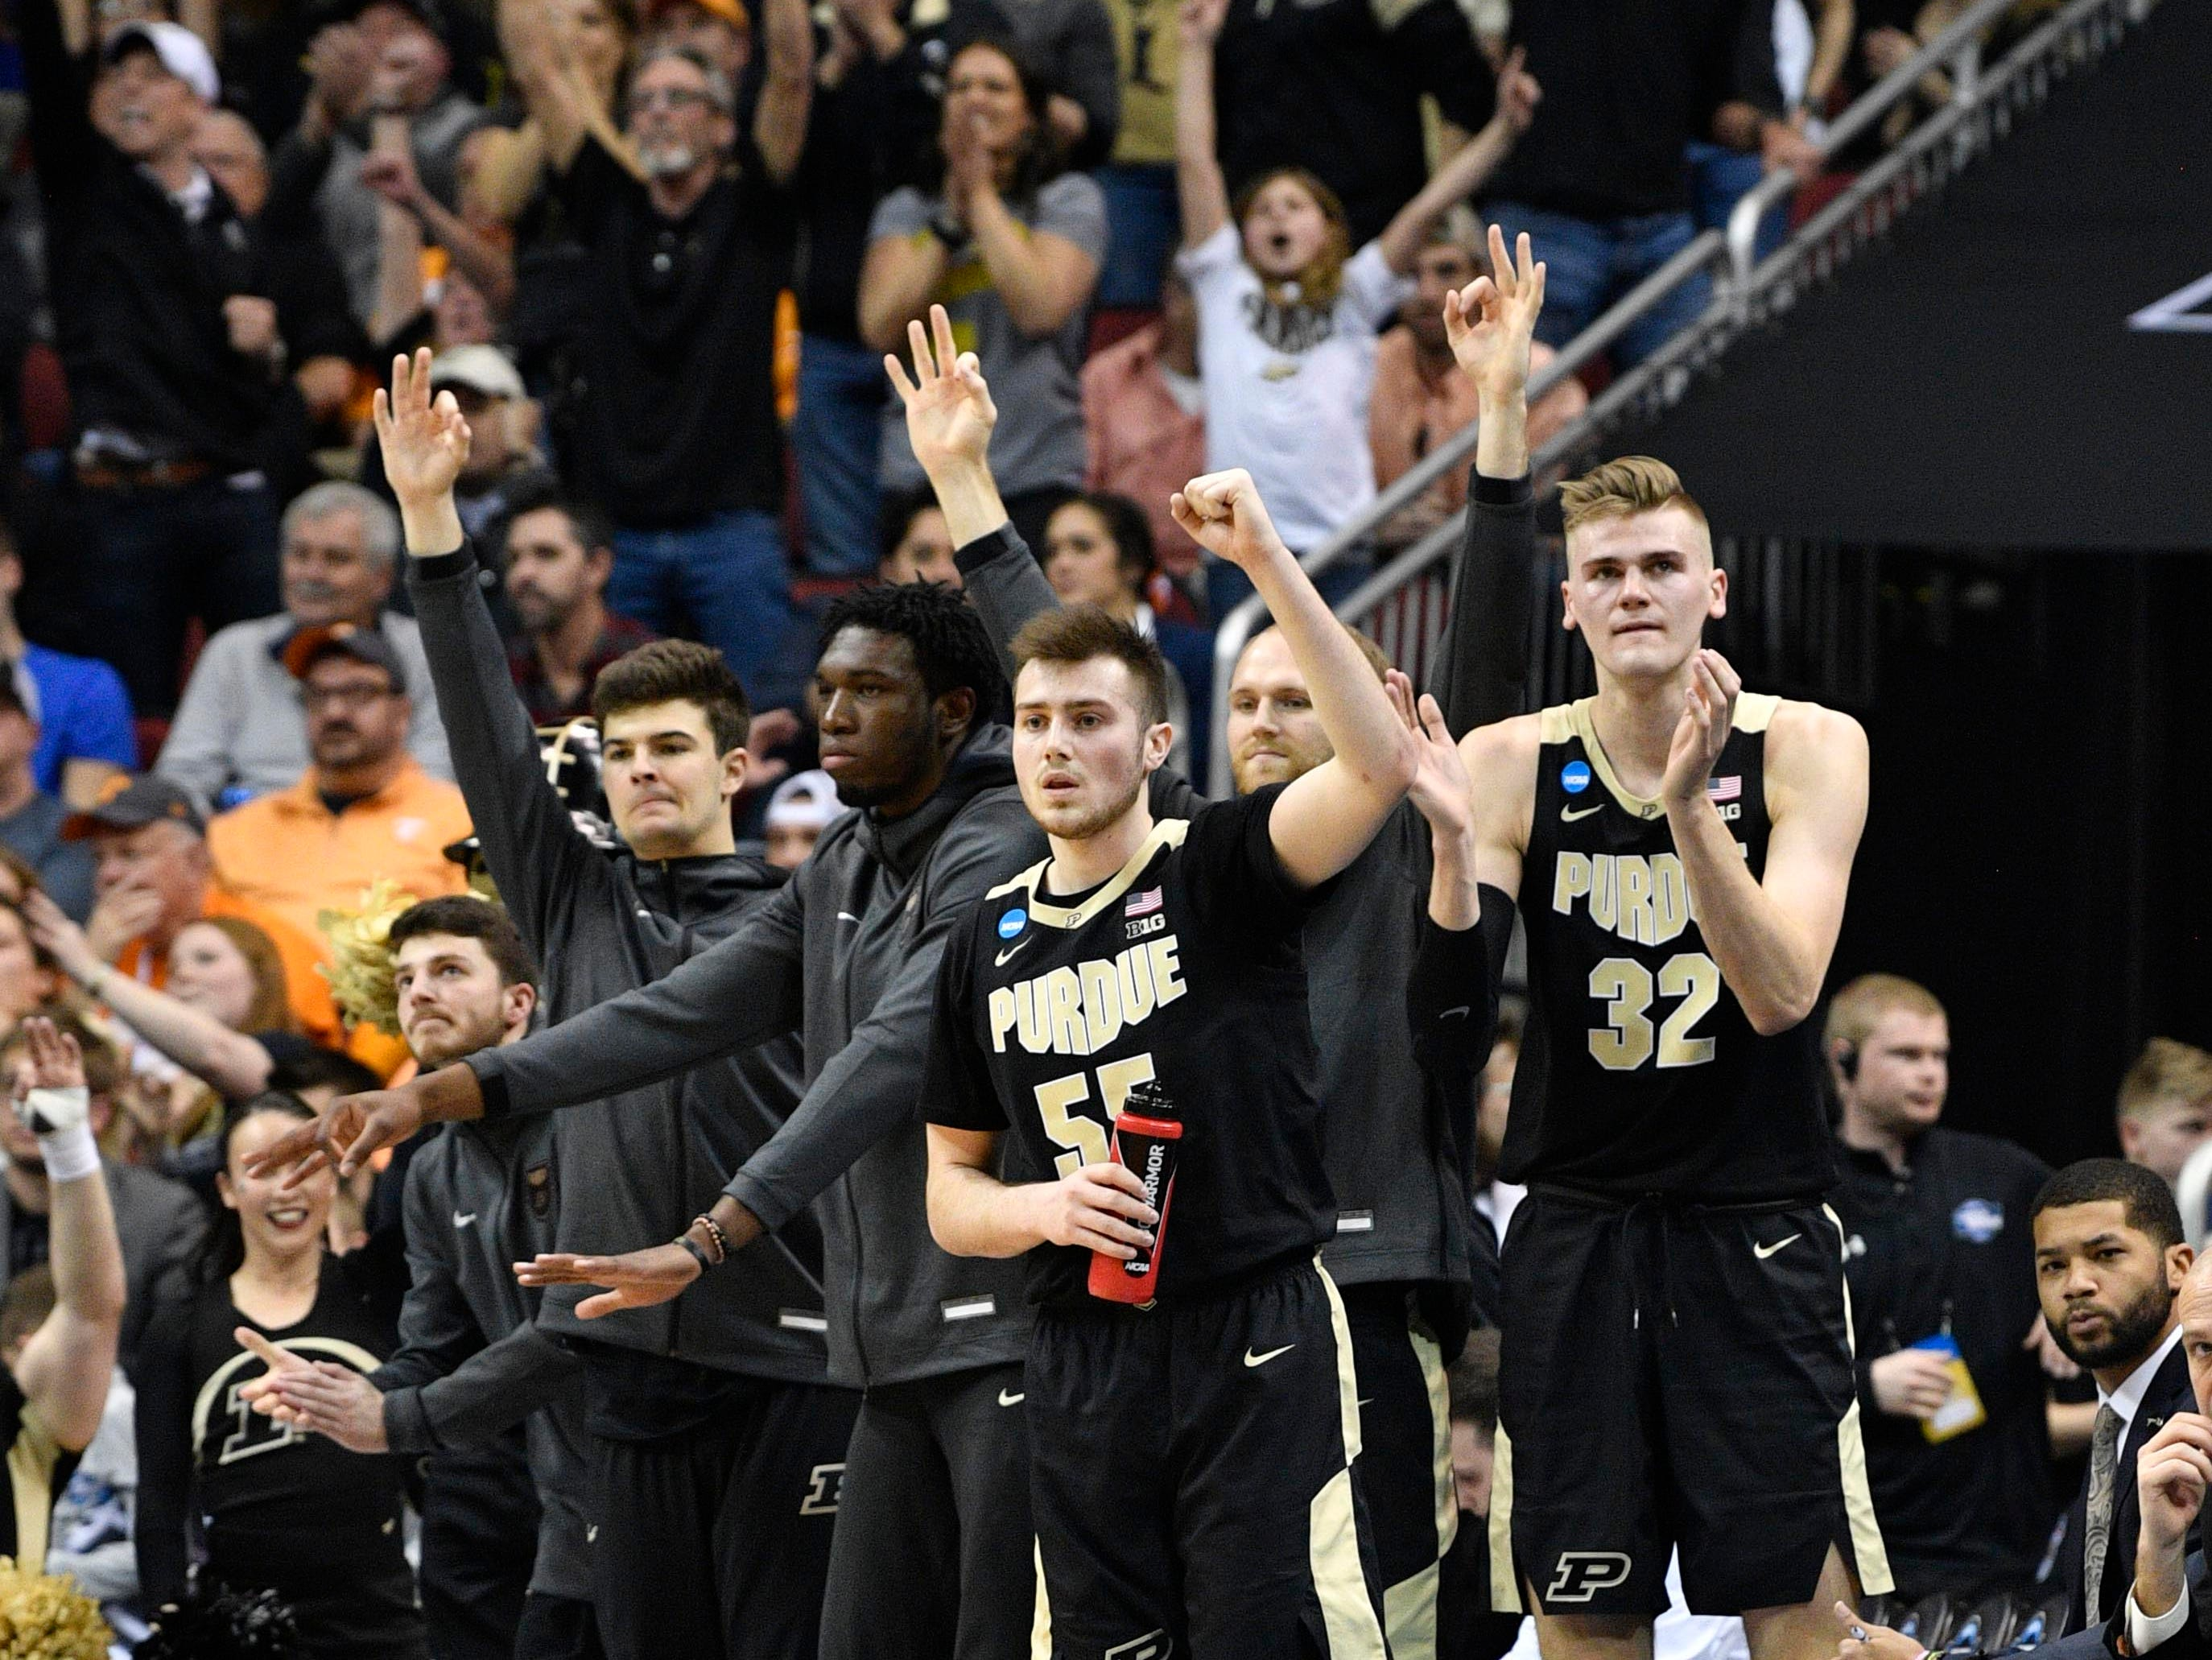 Mar 28, 2019; Louisville, KY, United States; Purdue Boilermakers team members react from the bench during the first half in the semifinals against the Tennessee Volunteers of the south regional of the 2019 NCAA Tournament at KFC Yum Center. Mandatory Credit: Jamie Rhodes-USA TODAY Sports